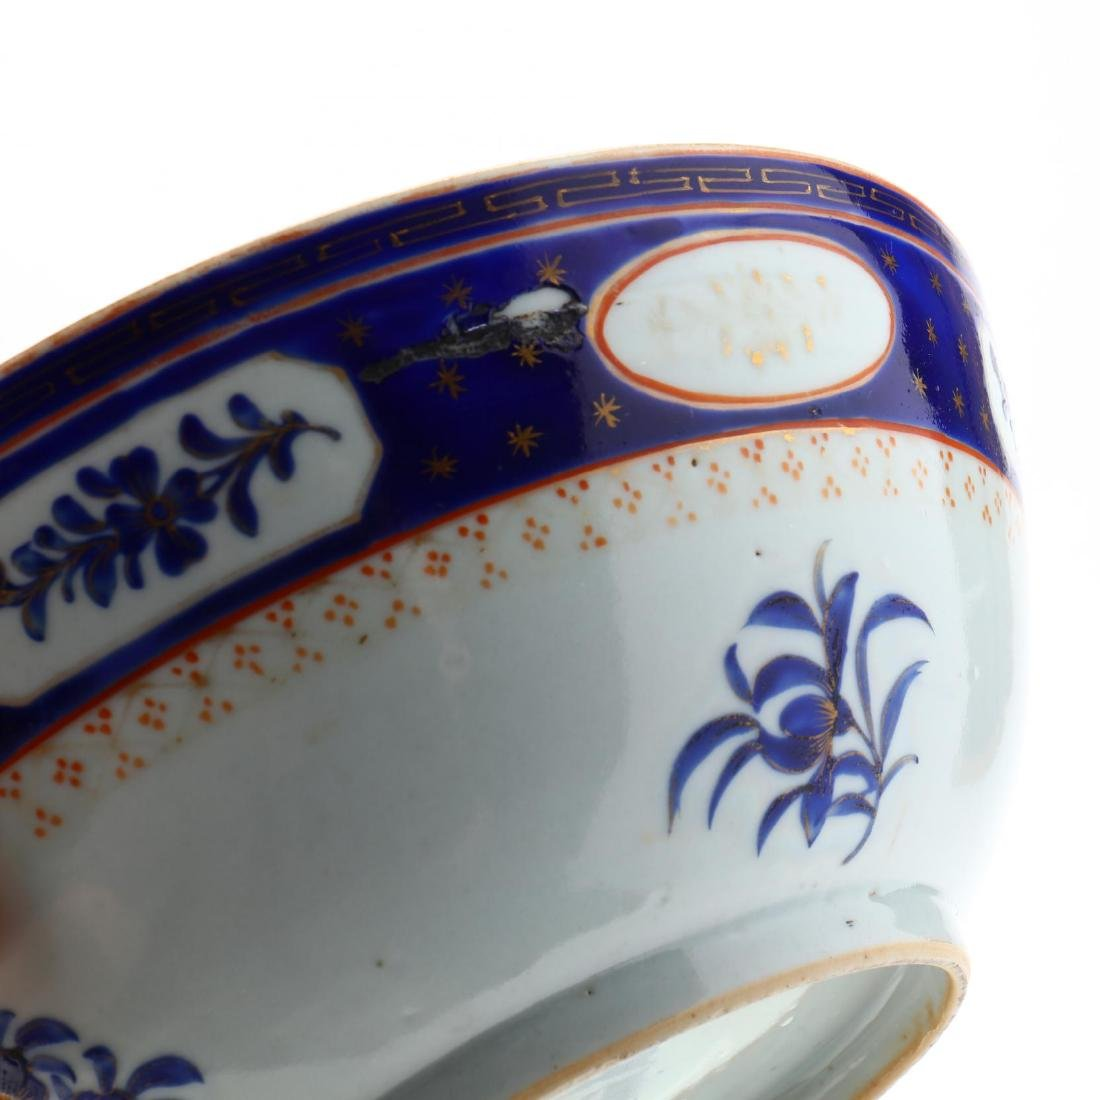 Pair of Antique Chinese Export Porcelain Bowls - 2